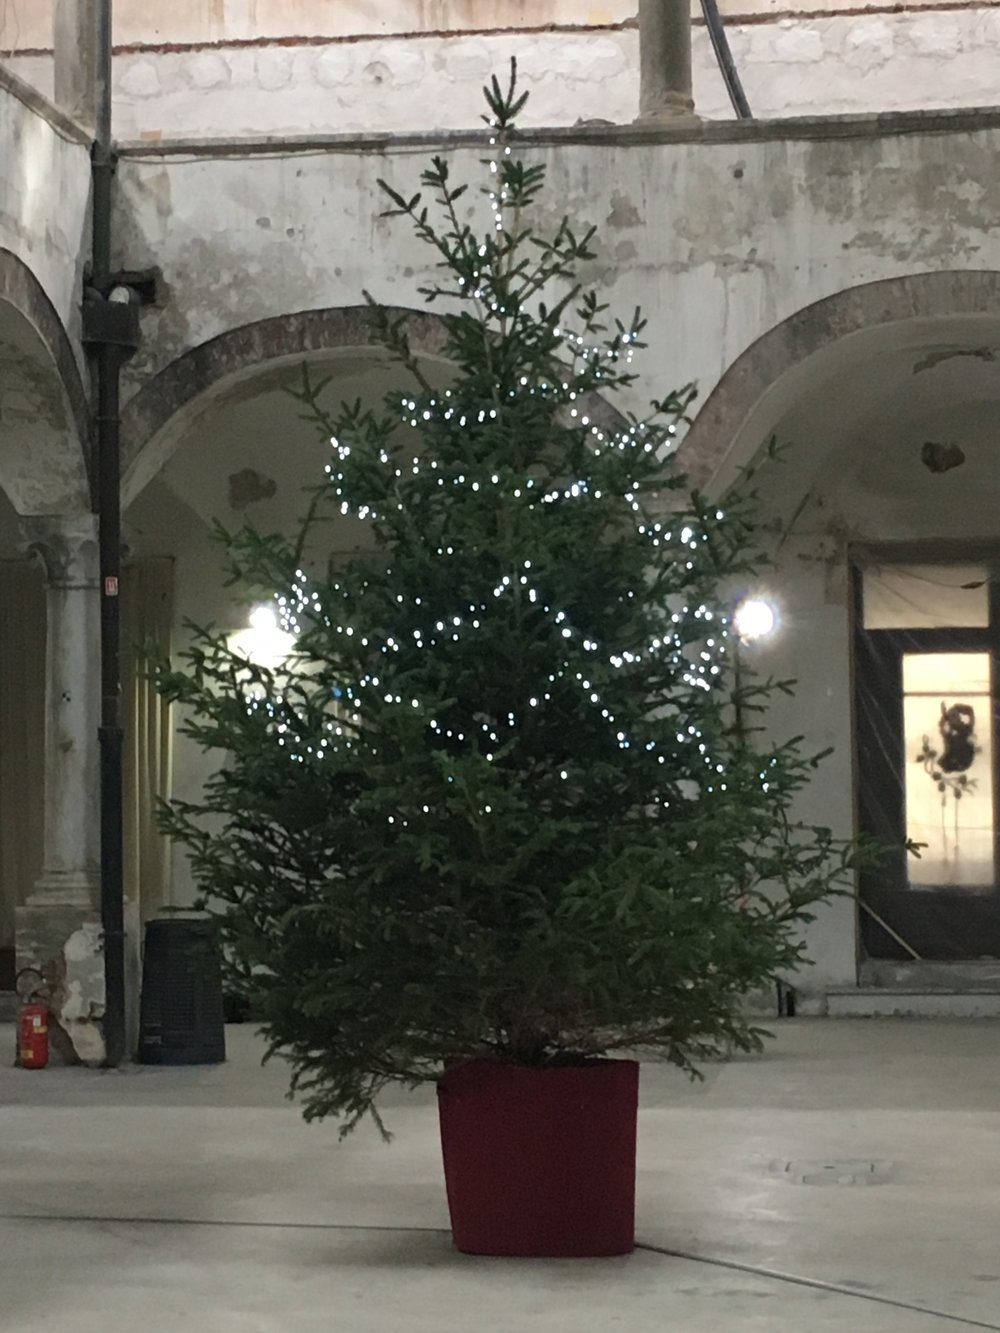 This simple tree sits inside the old mercato alongside a small art show.